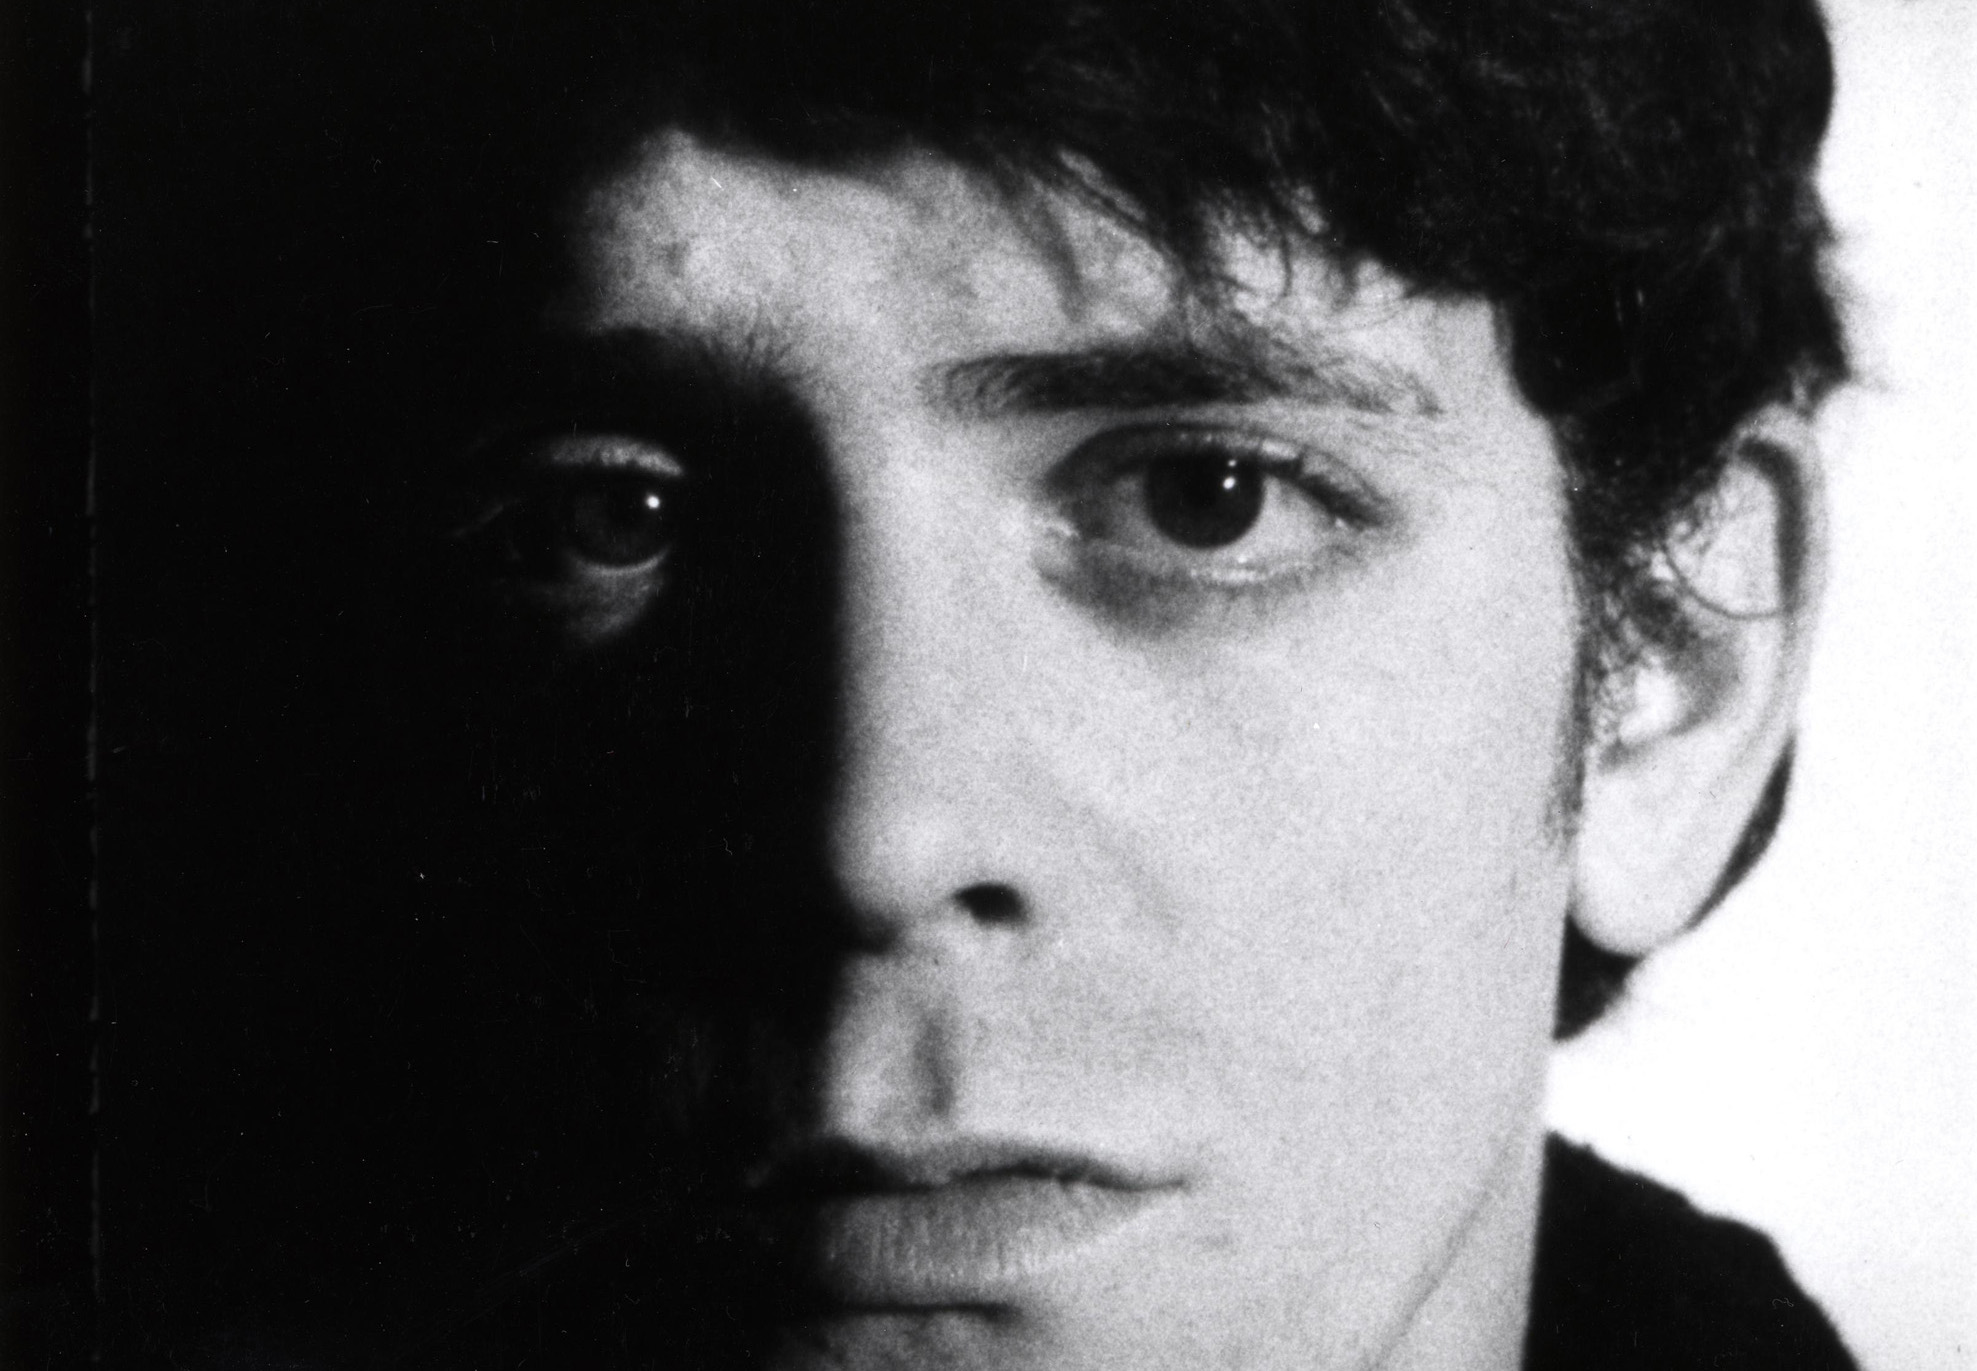 In Memory of Lou Reed: PlayStation 4 - Perfect Day Commercial